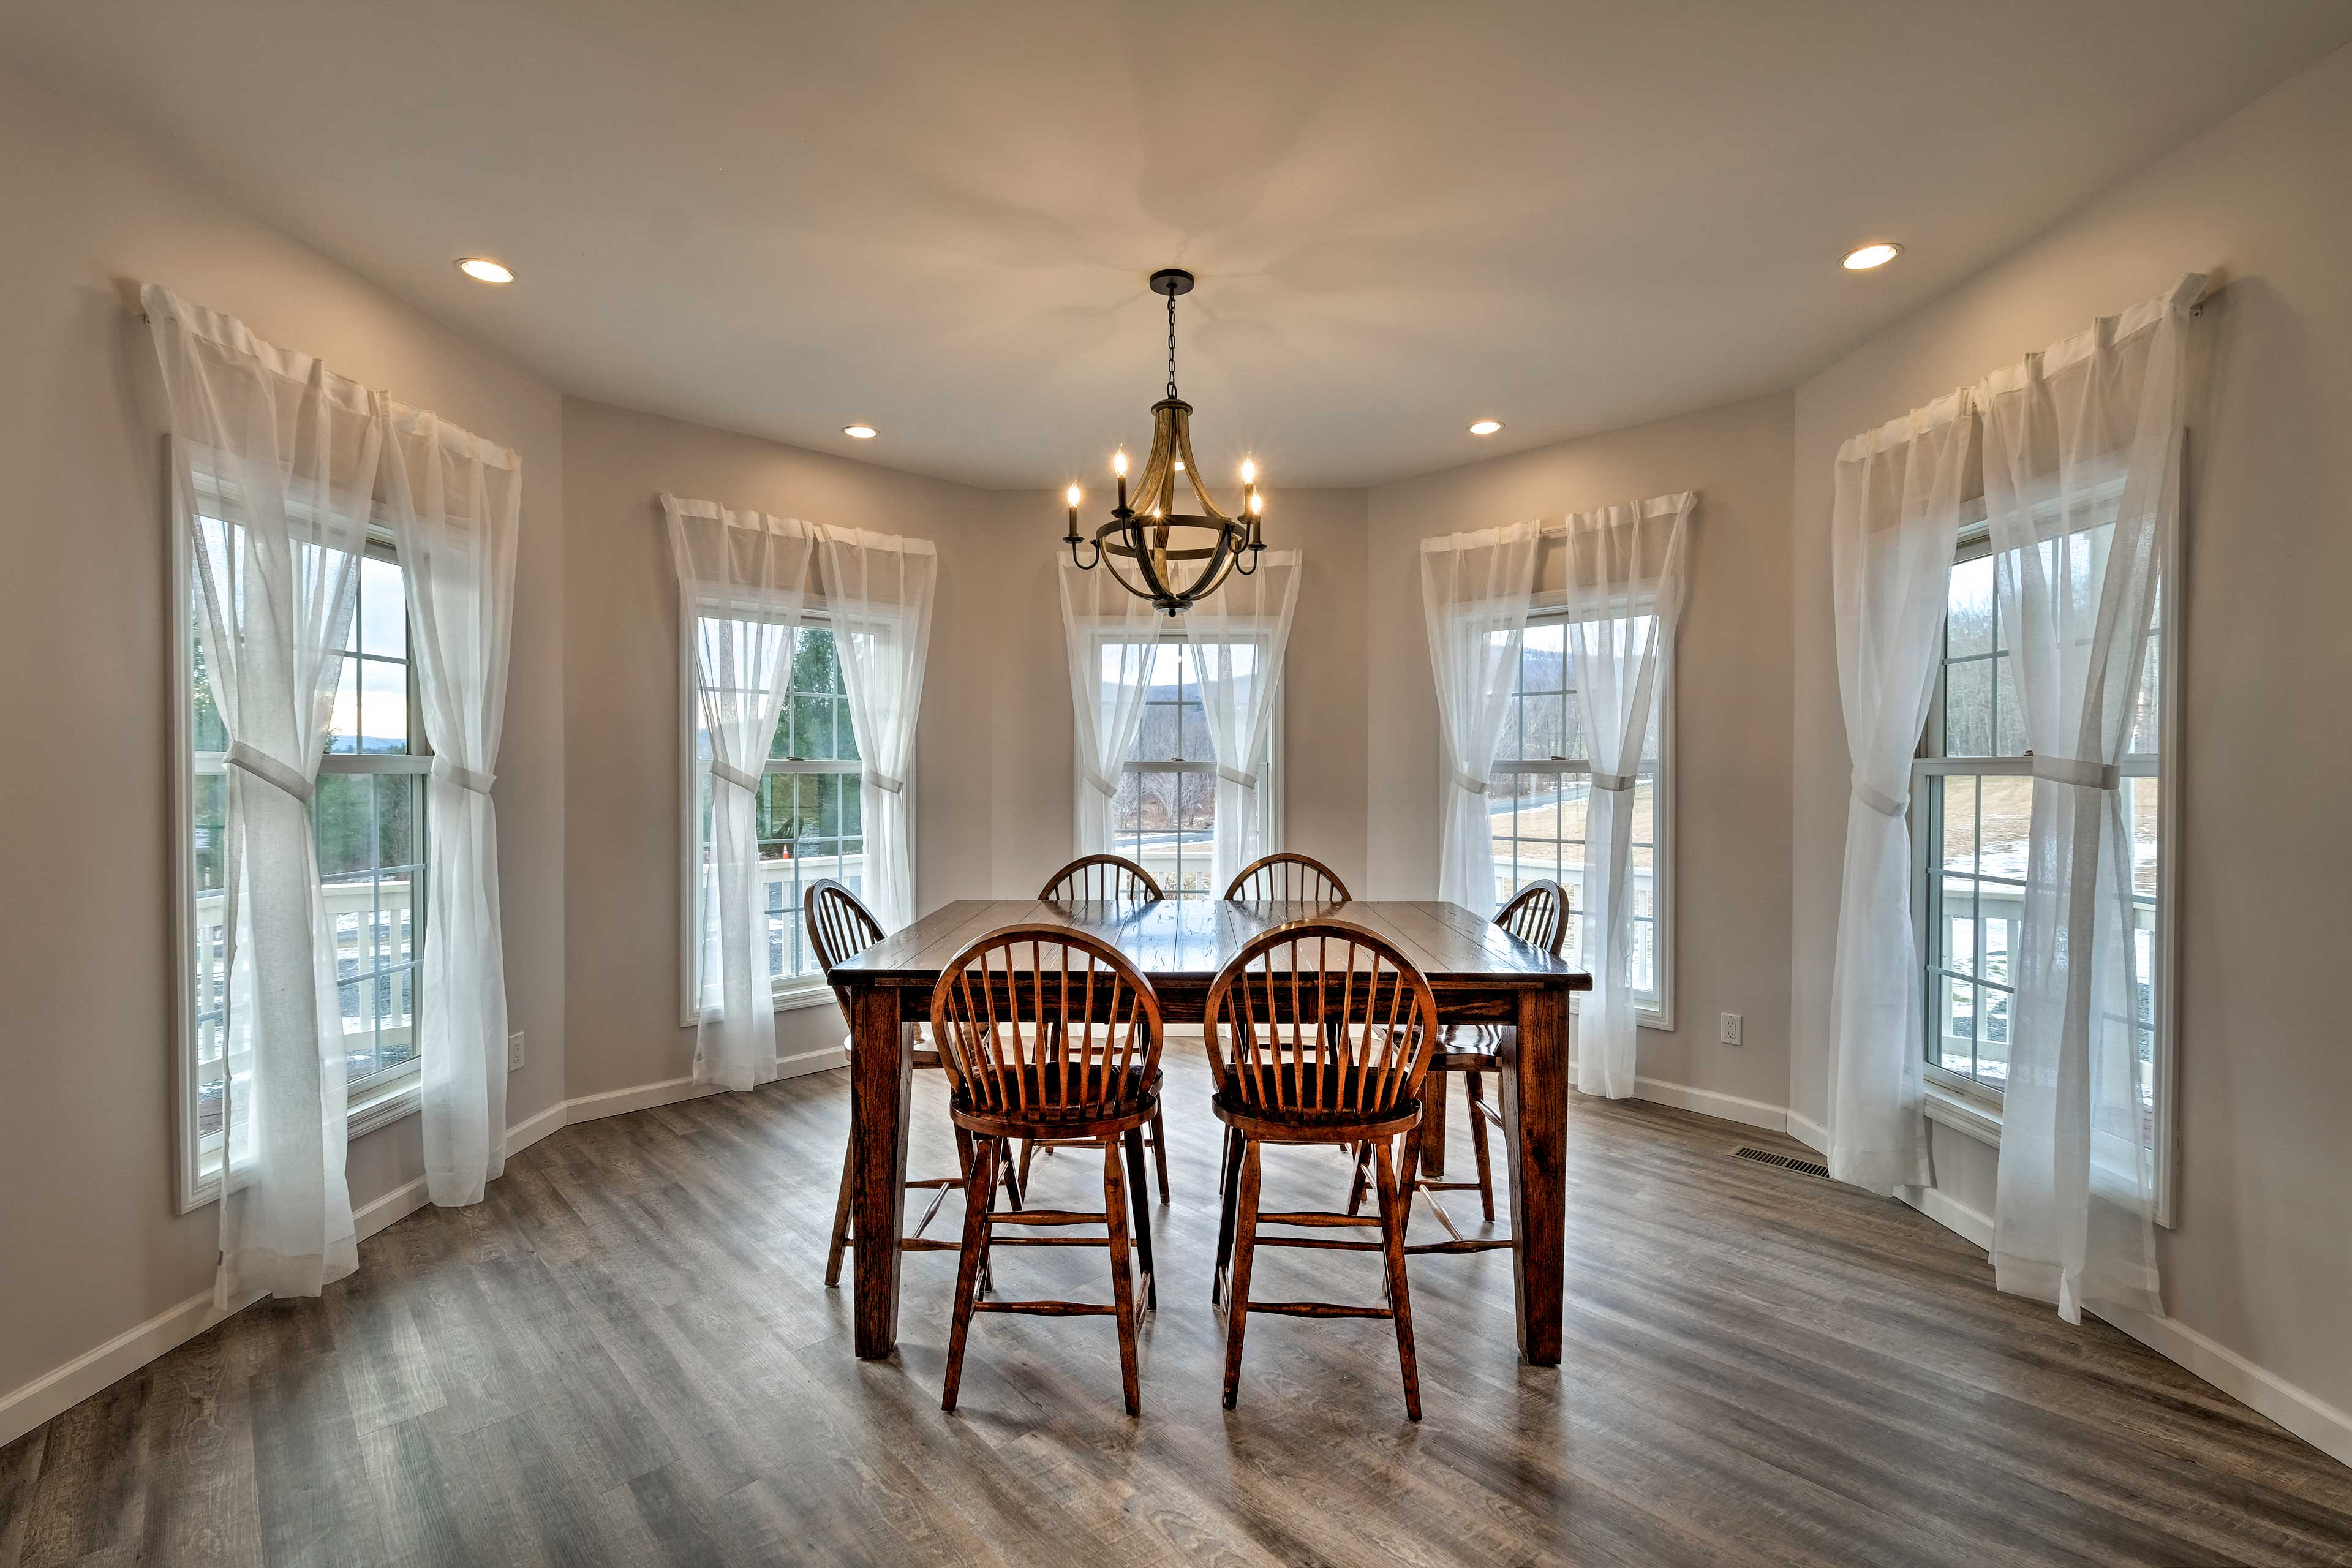 You'll find ample picture windows throughout the house, providing tons of light.